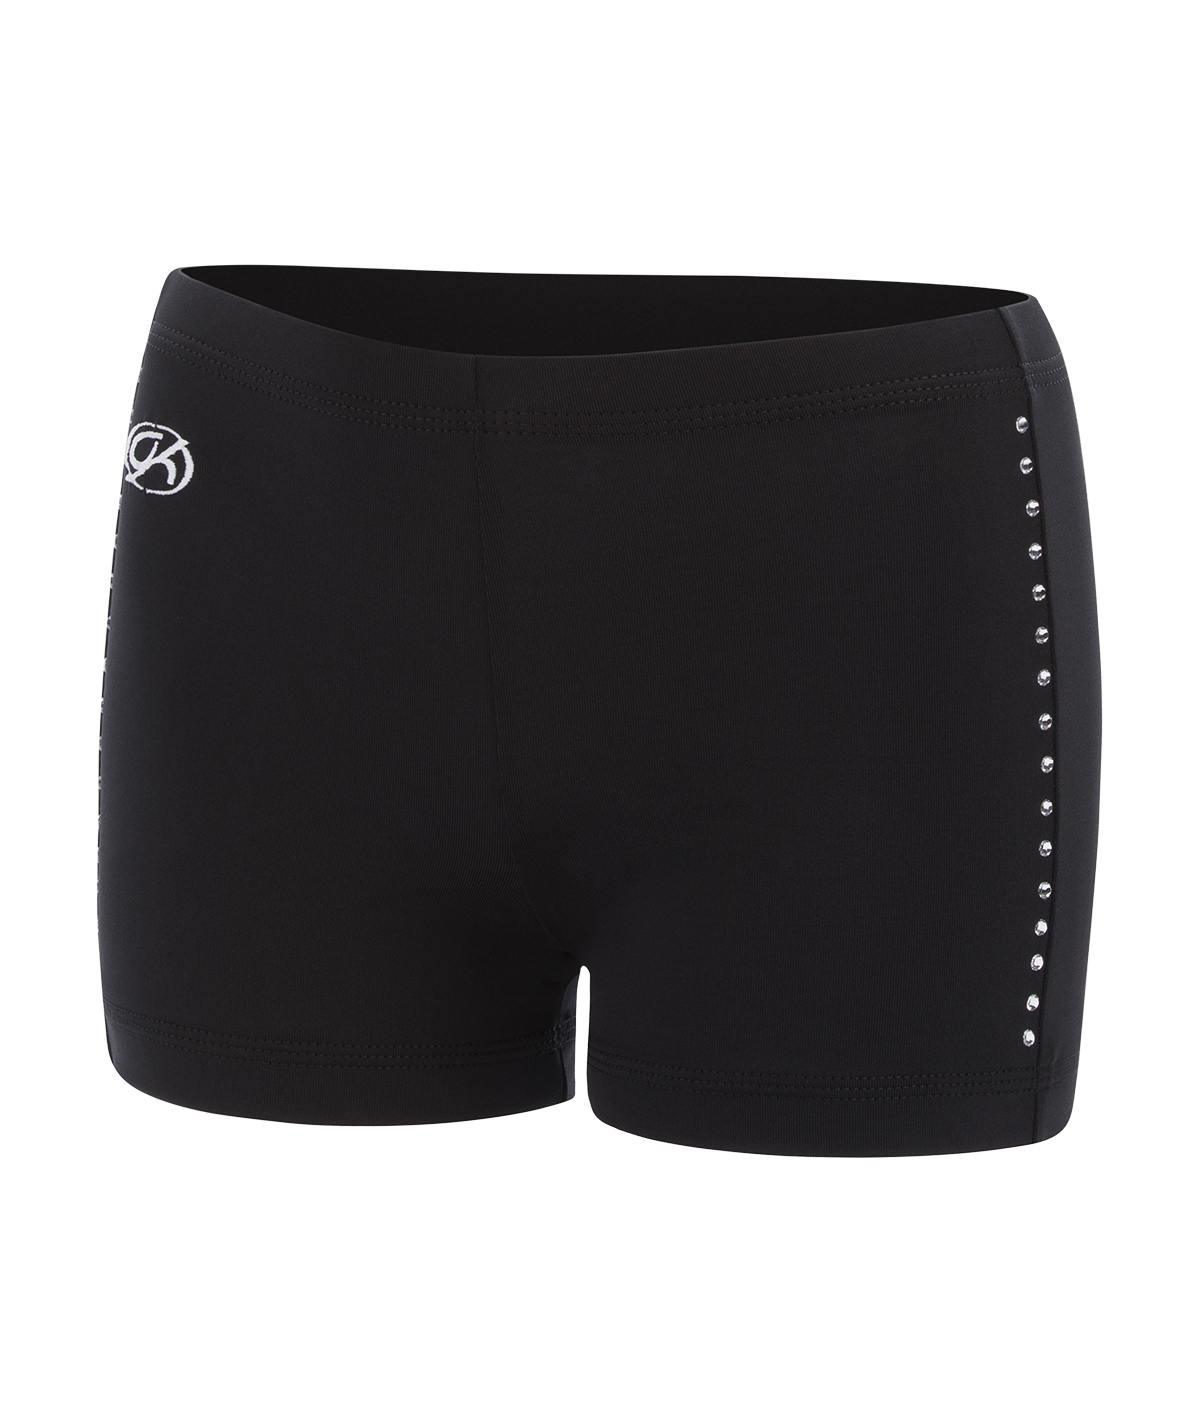 GK All Star DryTech Jeweled Shorts